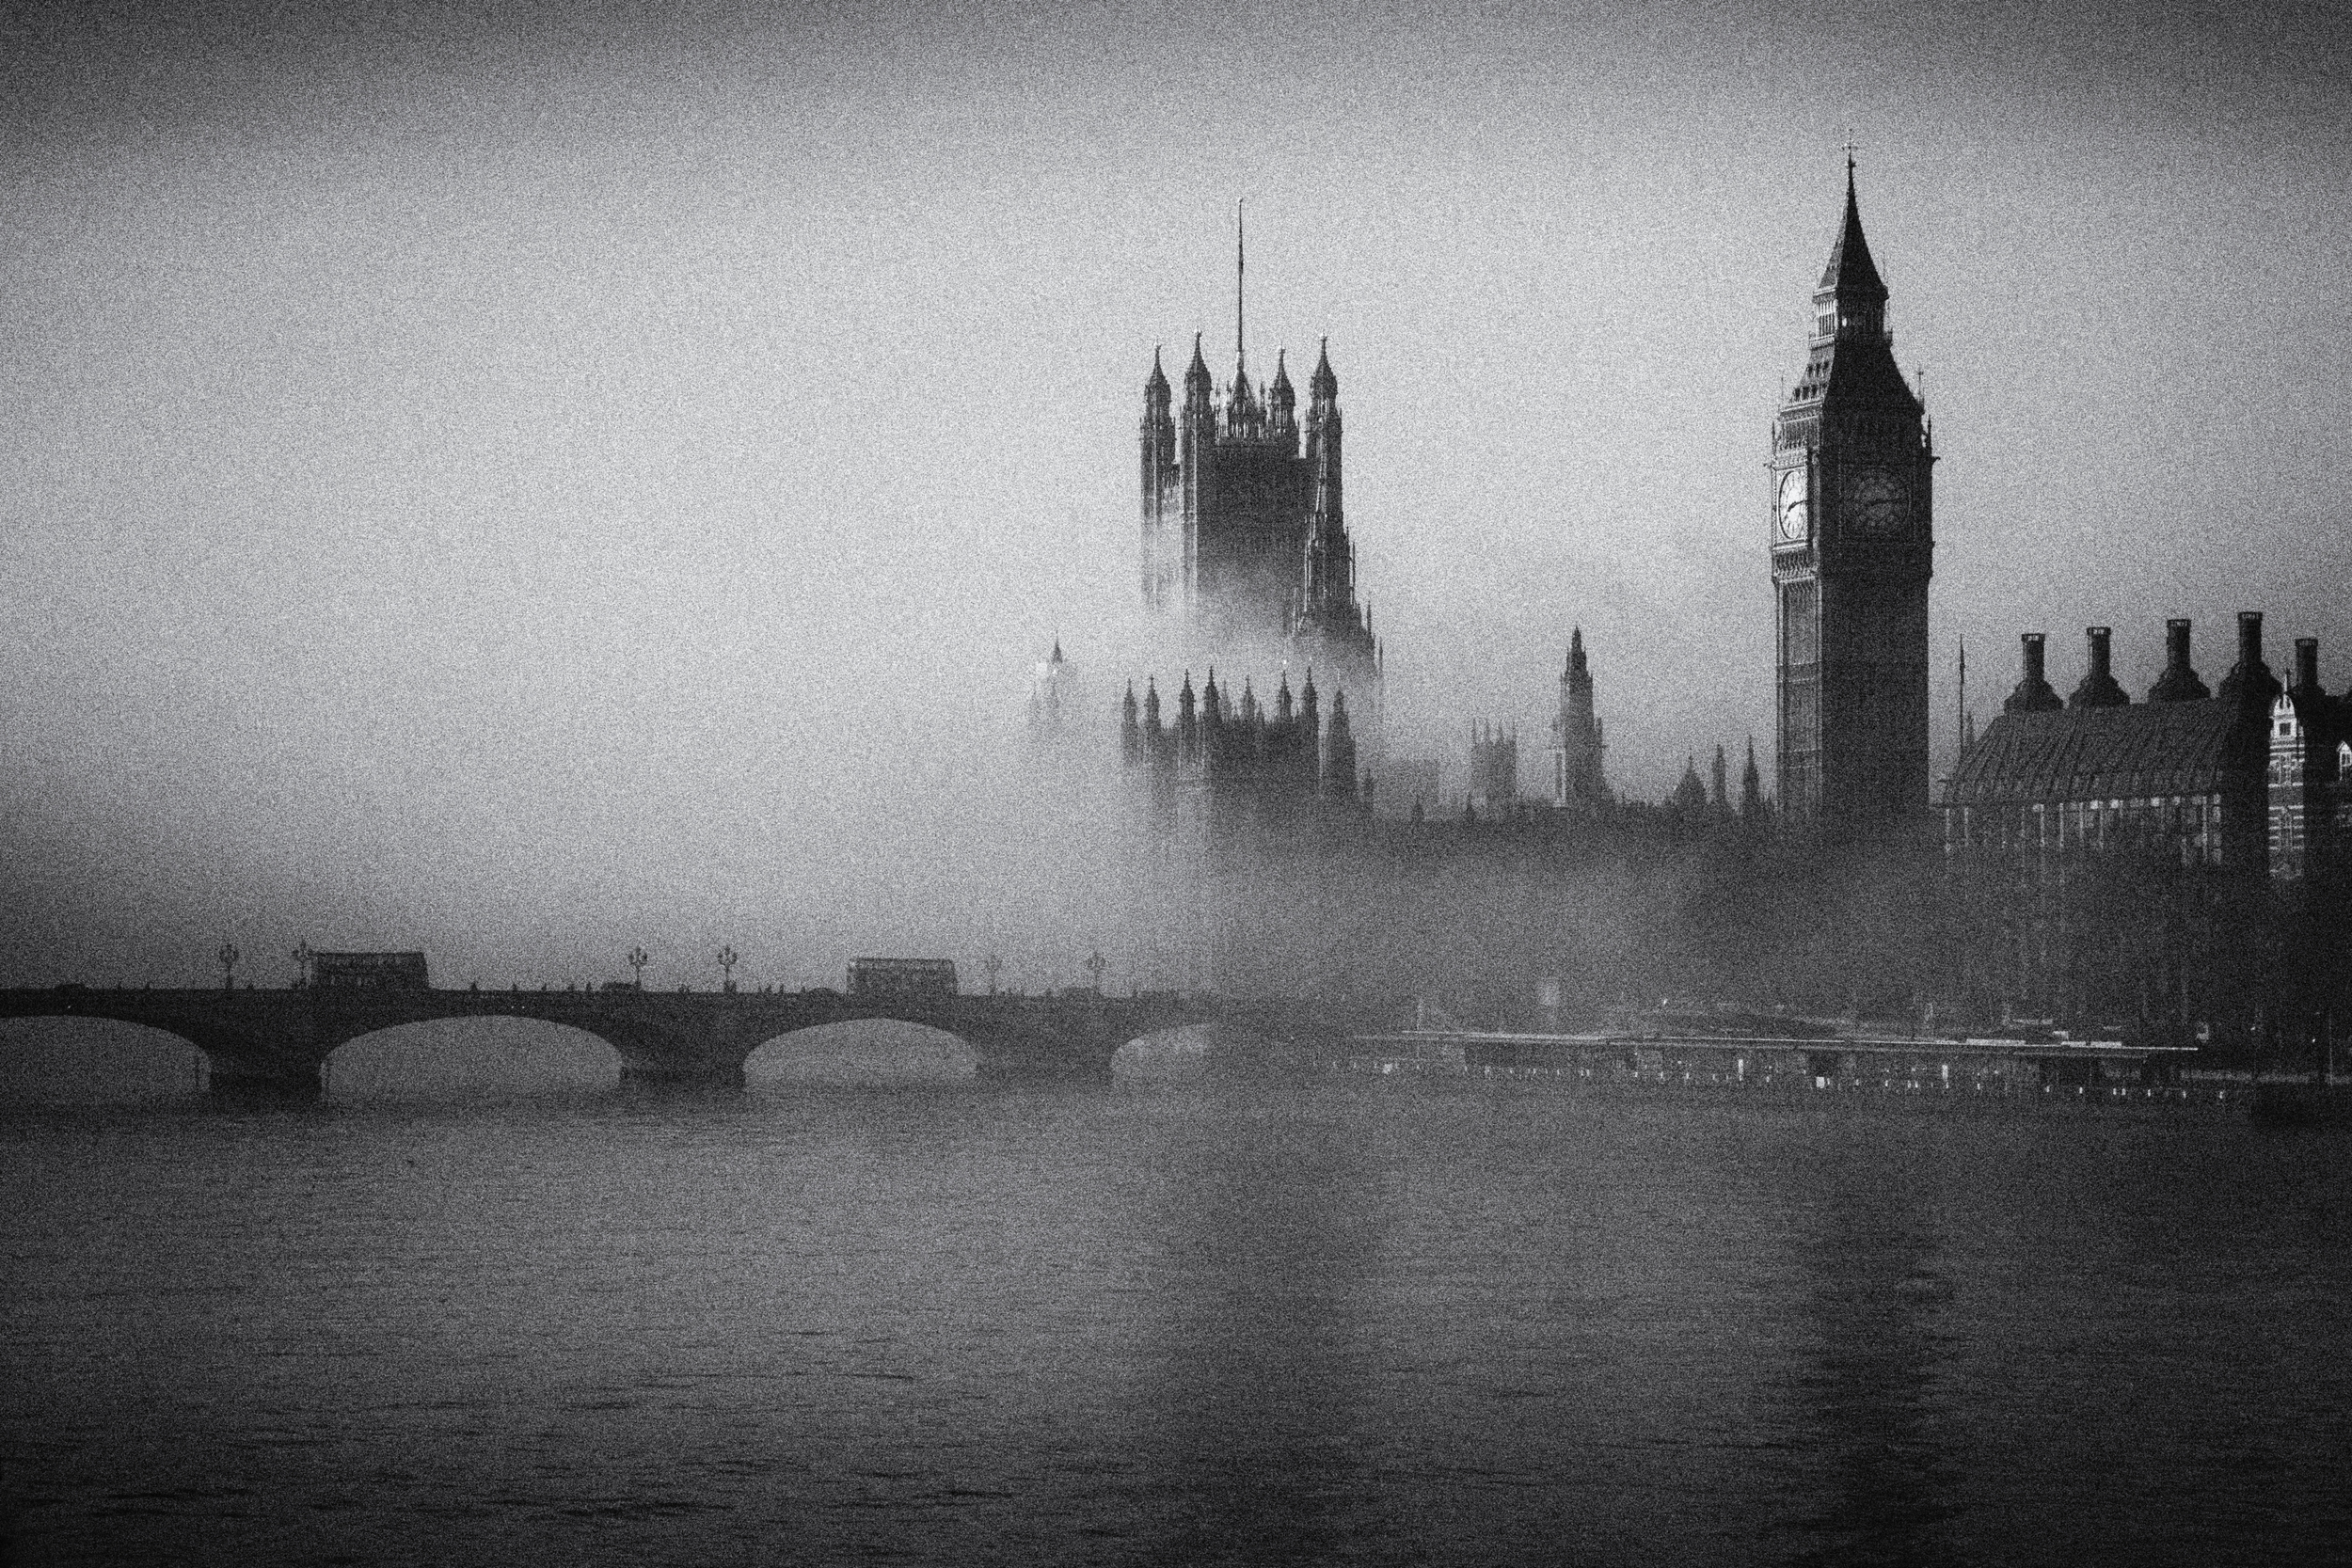 Mist over Big Ben and the Houses of Parliament